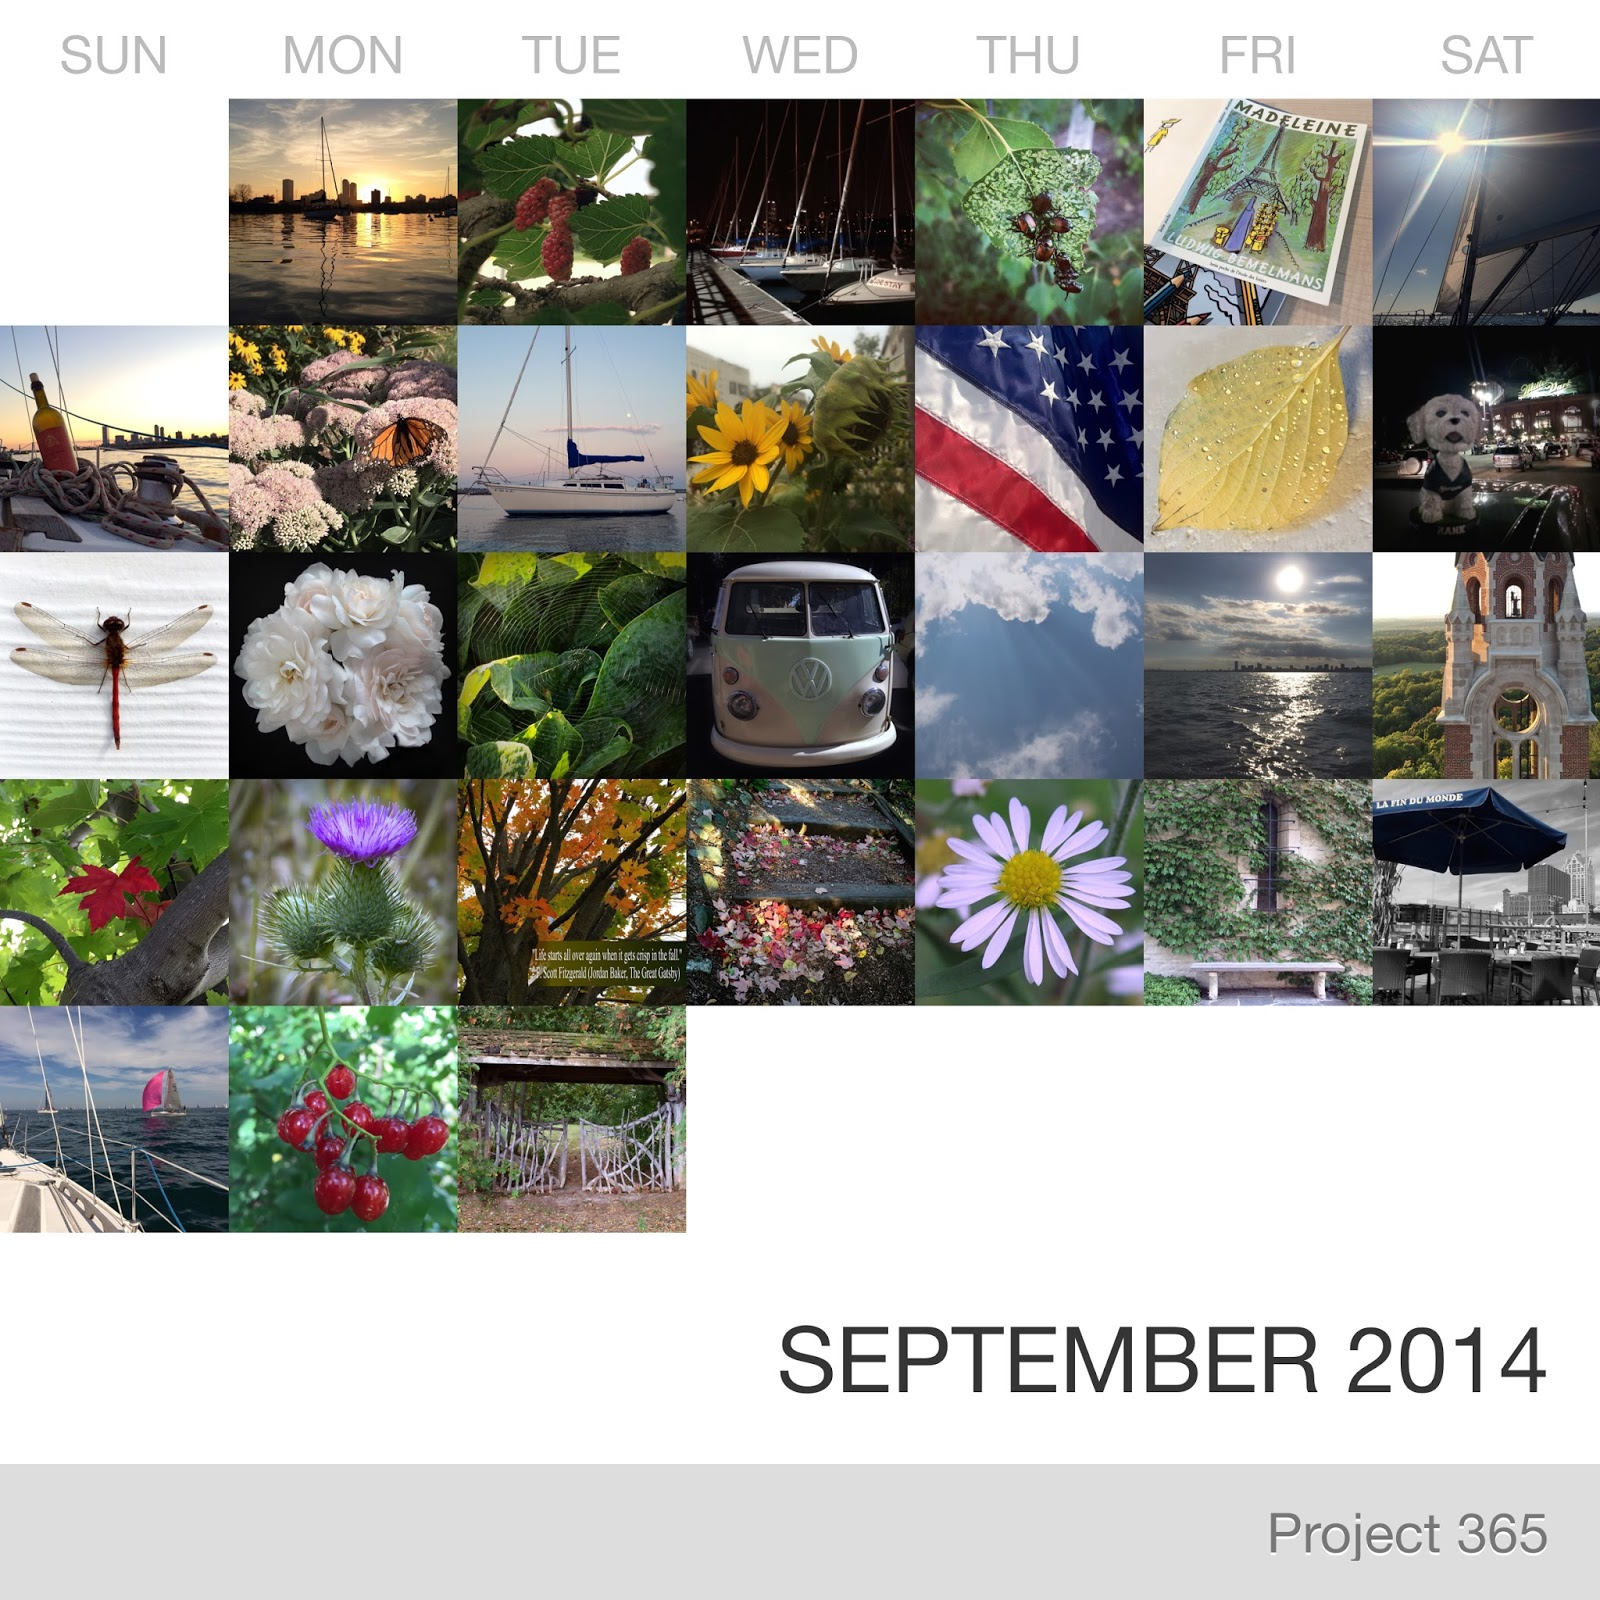 Project 365 _September-2014_Collage.jpg